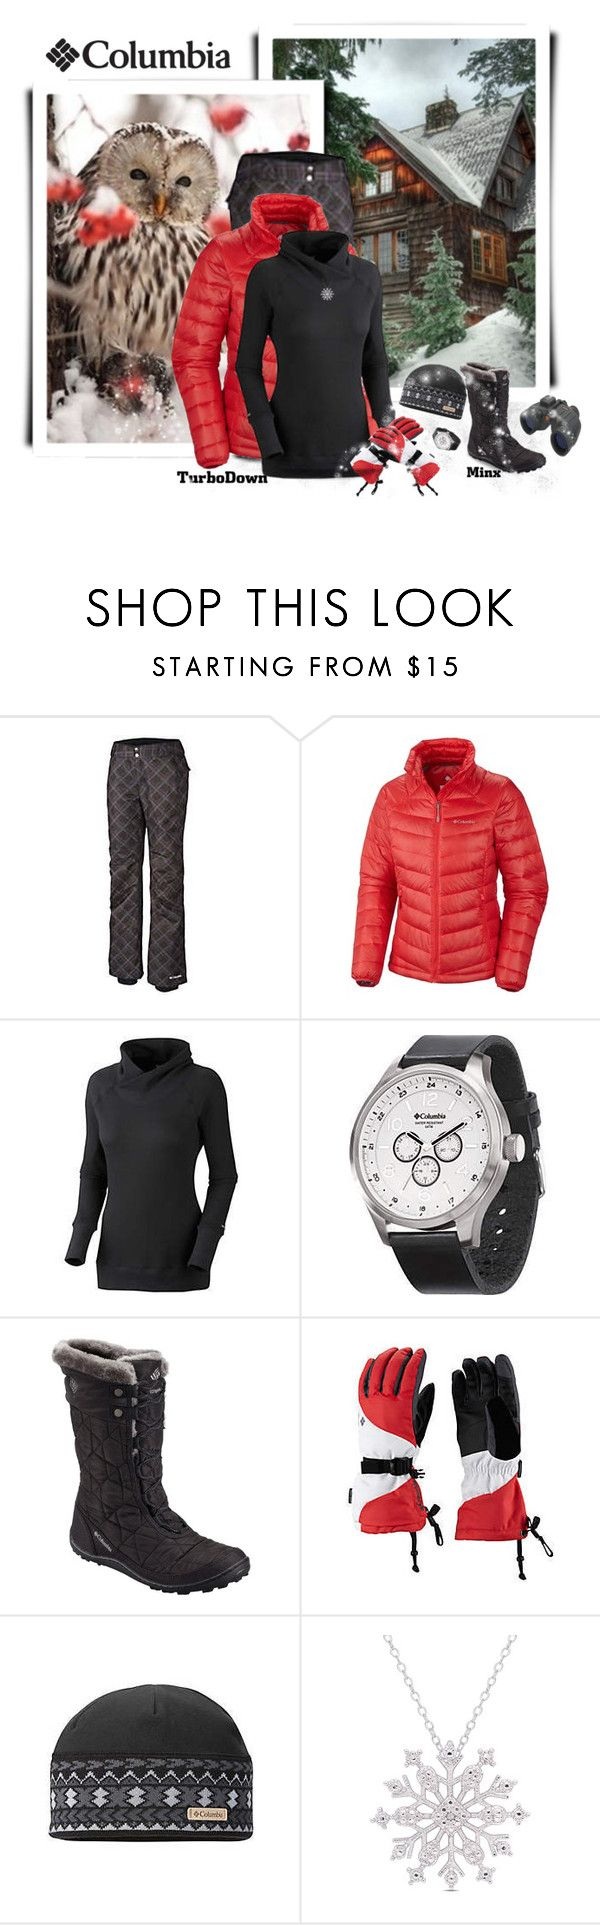 """Get Down With Columbia TurboDown: Contest Entry"" by dkelley-0711 ❤ liked on Polyvore featuring Columbia Sportswear, Celestron, Alpine and Finesque"